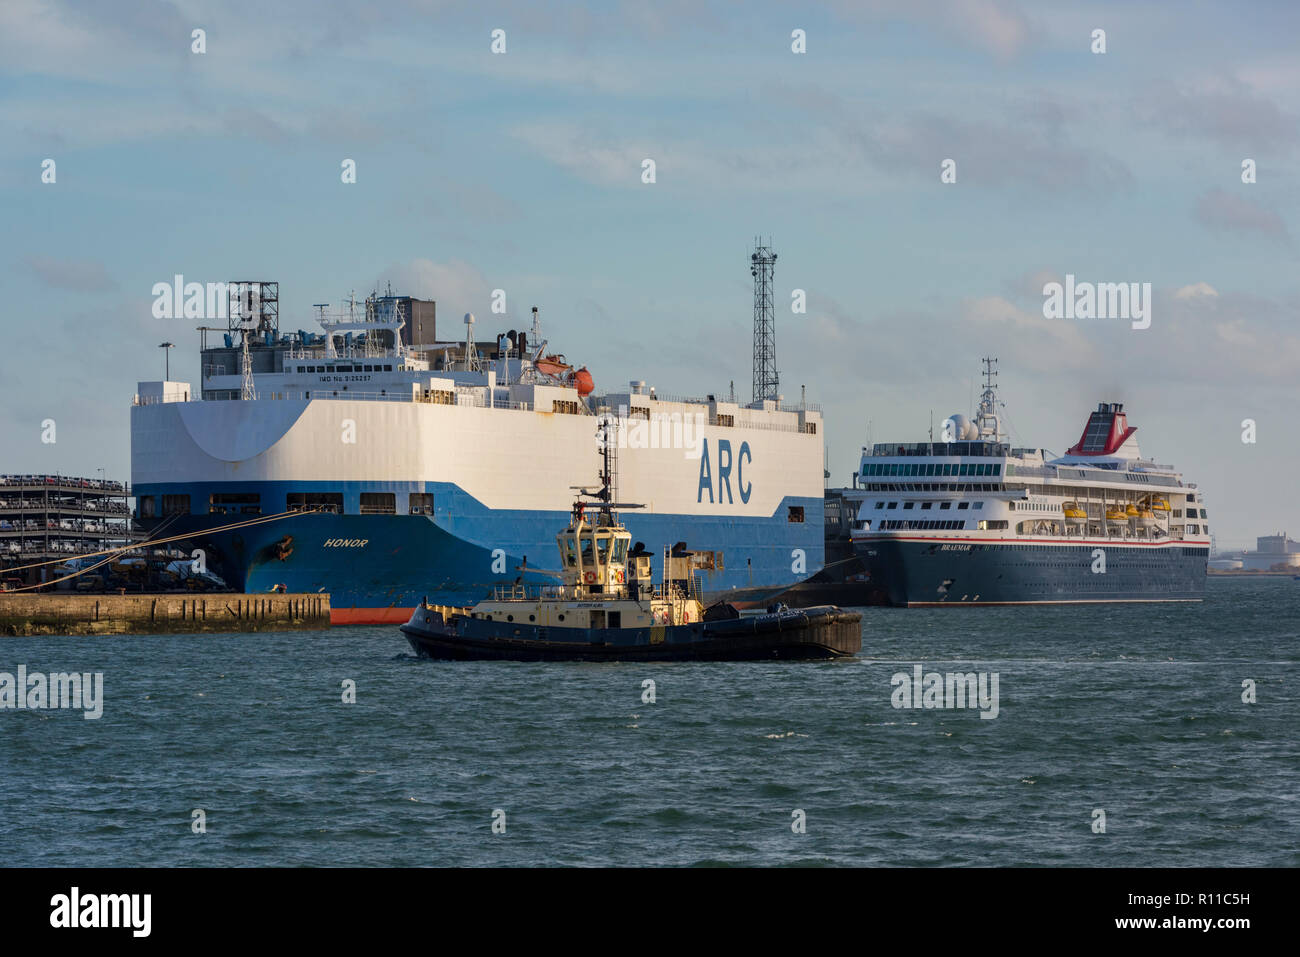 the Arc car carrier ship Honor next to the Fred Olsen cruise ship or liner Braemar and the Switzer tug Alma alongside in the port of southampton docks - Stock Image